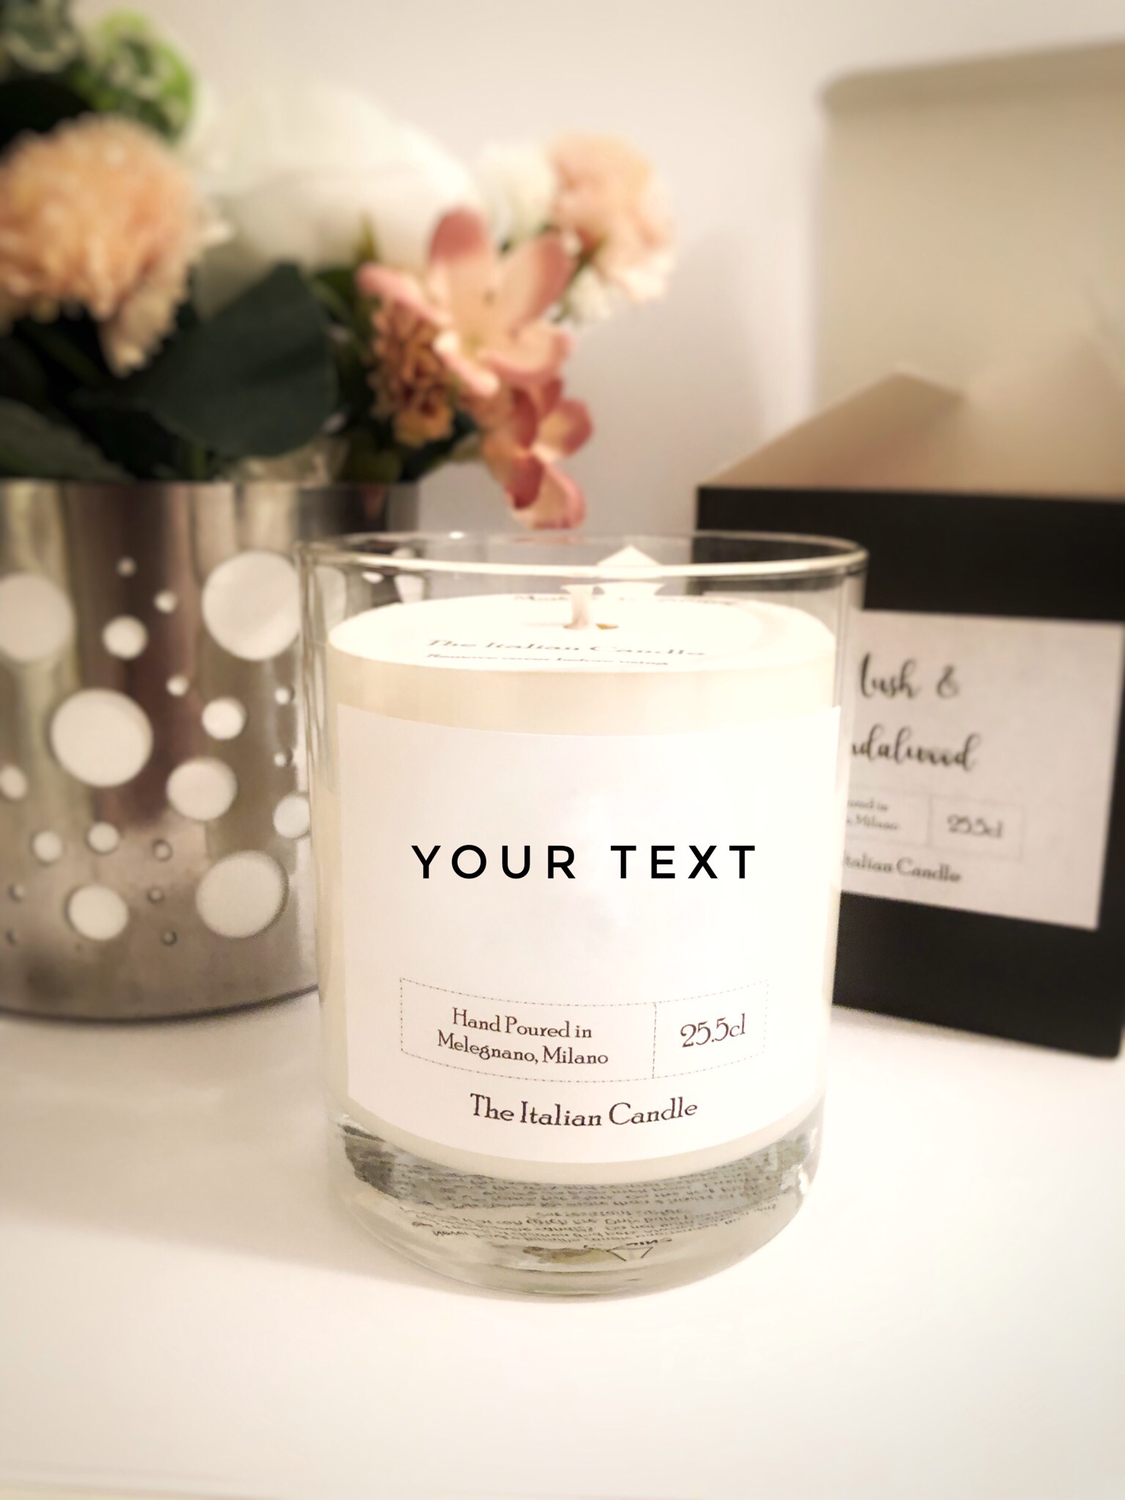 Pin By Genny Ray On Diy Crafts Projects To Try In 2020 Personalized Candles Personalised Wedding Candles Personalized Scented Candles